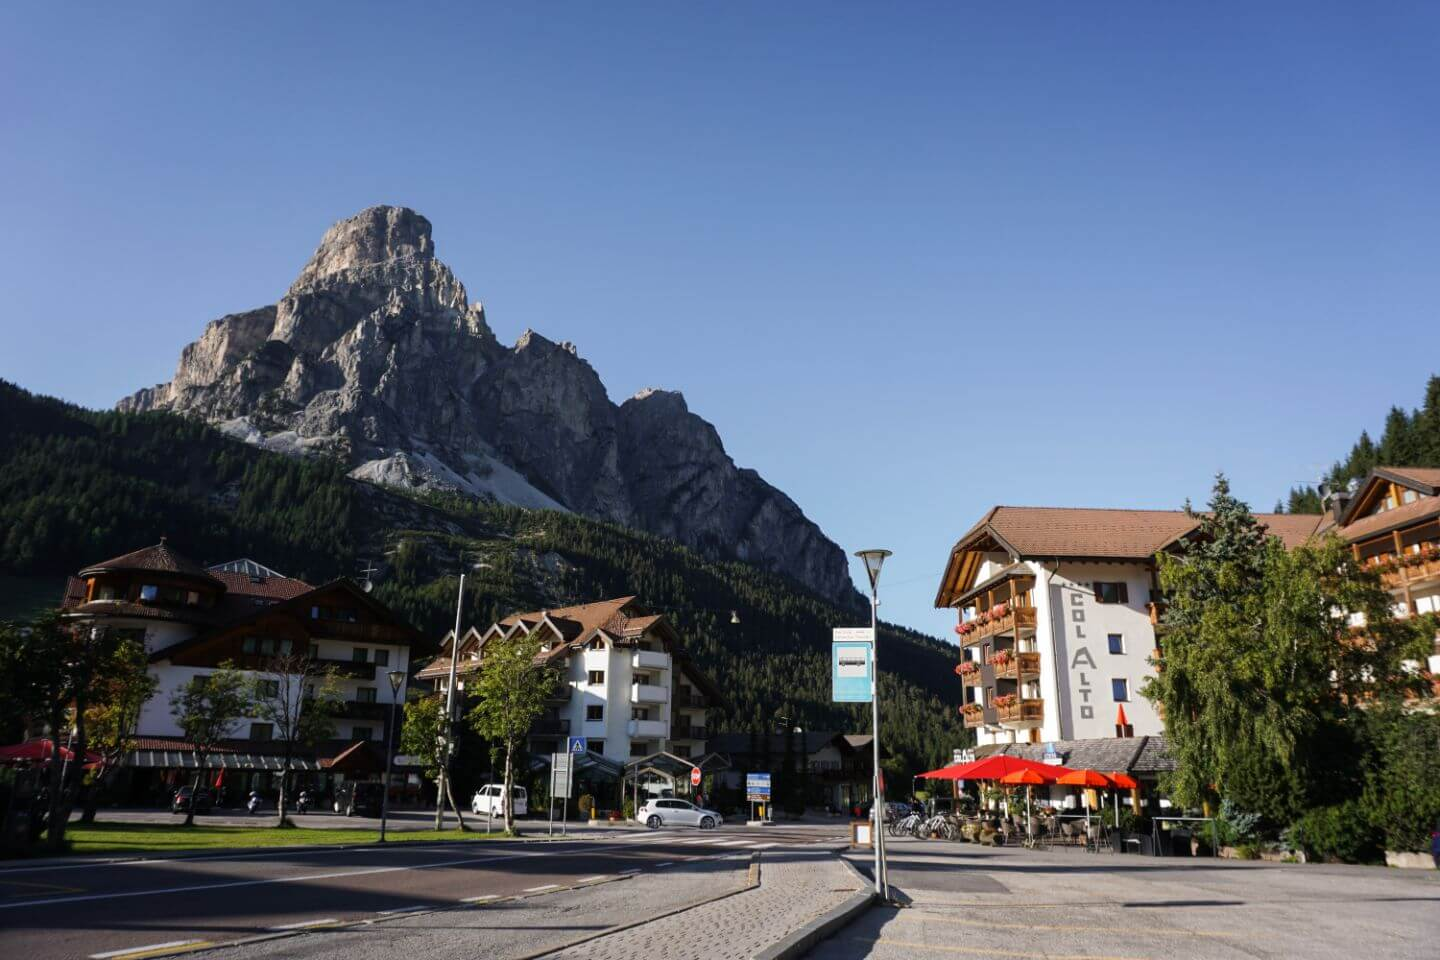 Hotel Col Alto in Corvara - Best Hotels in Alta Badia